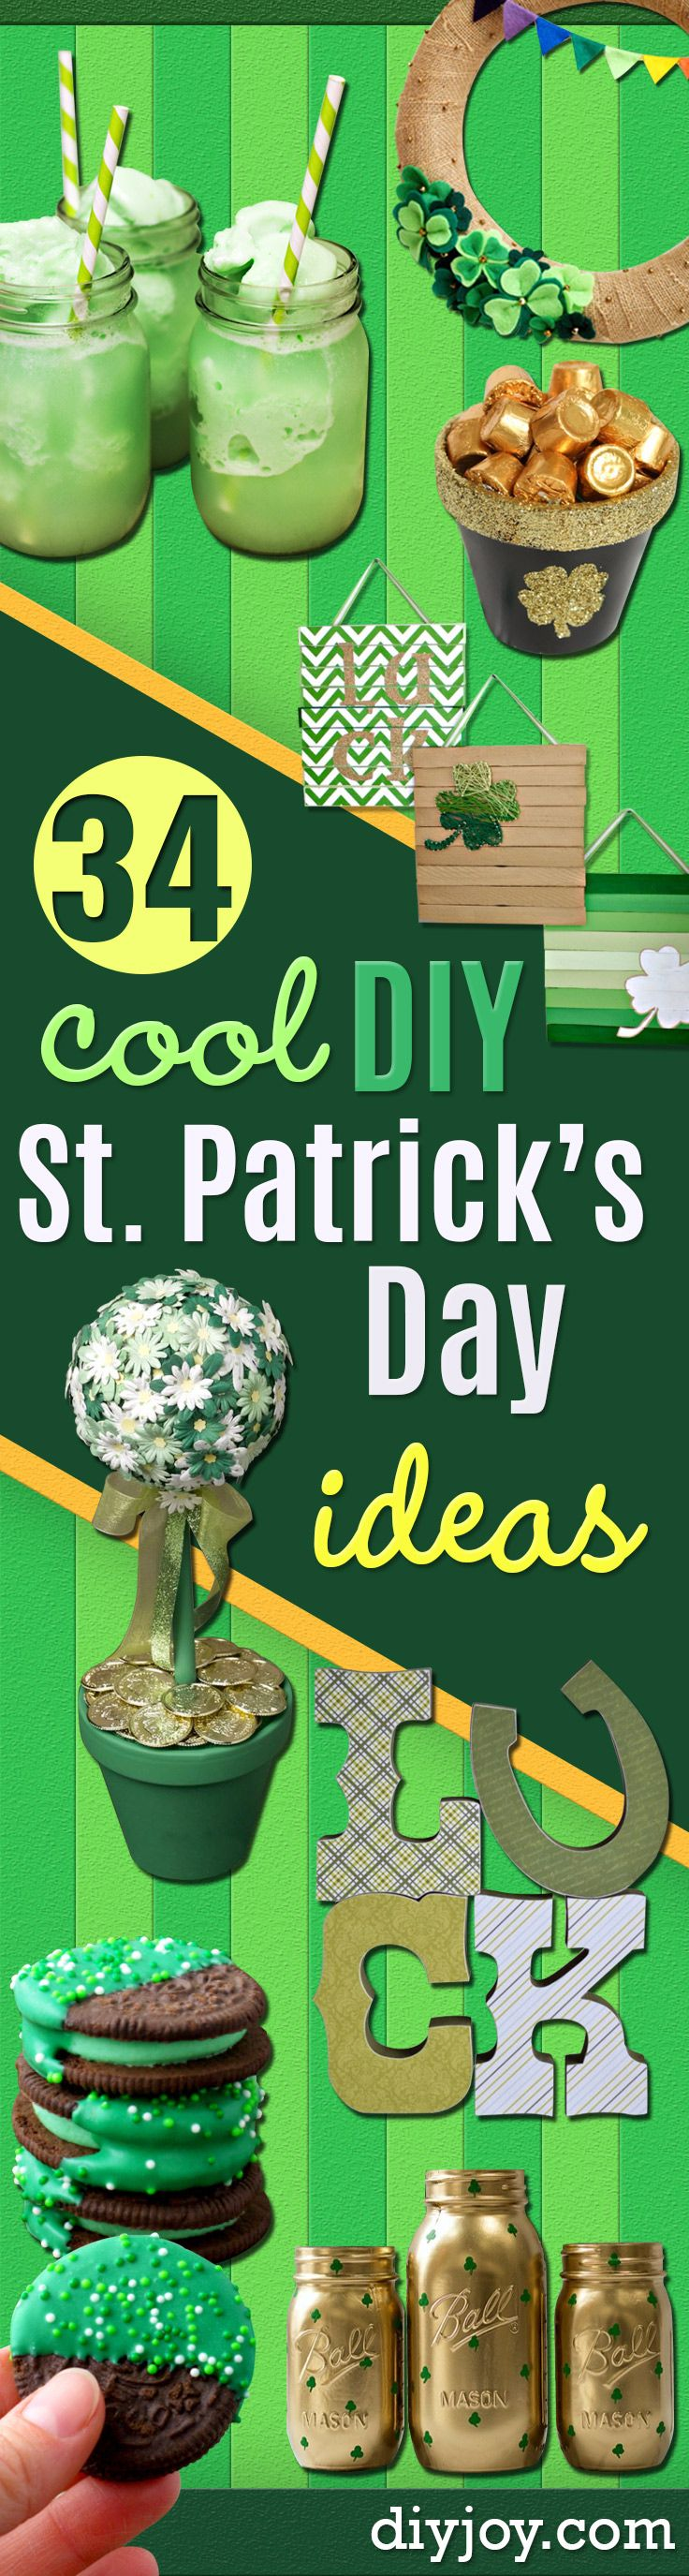 DIY St Patricks Day Ideas - Food and Best Recipes, Decorations and Home Decor, Party Ideas - Cupcakes, Drinks, Festive St Patrick Day Parties With these Easy, Quick and Cool Crafts and DIY Projects http://diyjoy.com/st-patricks-day-ideas